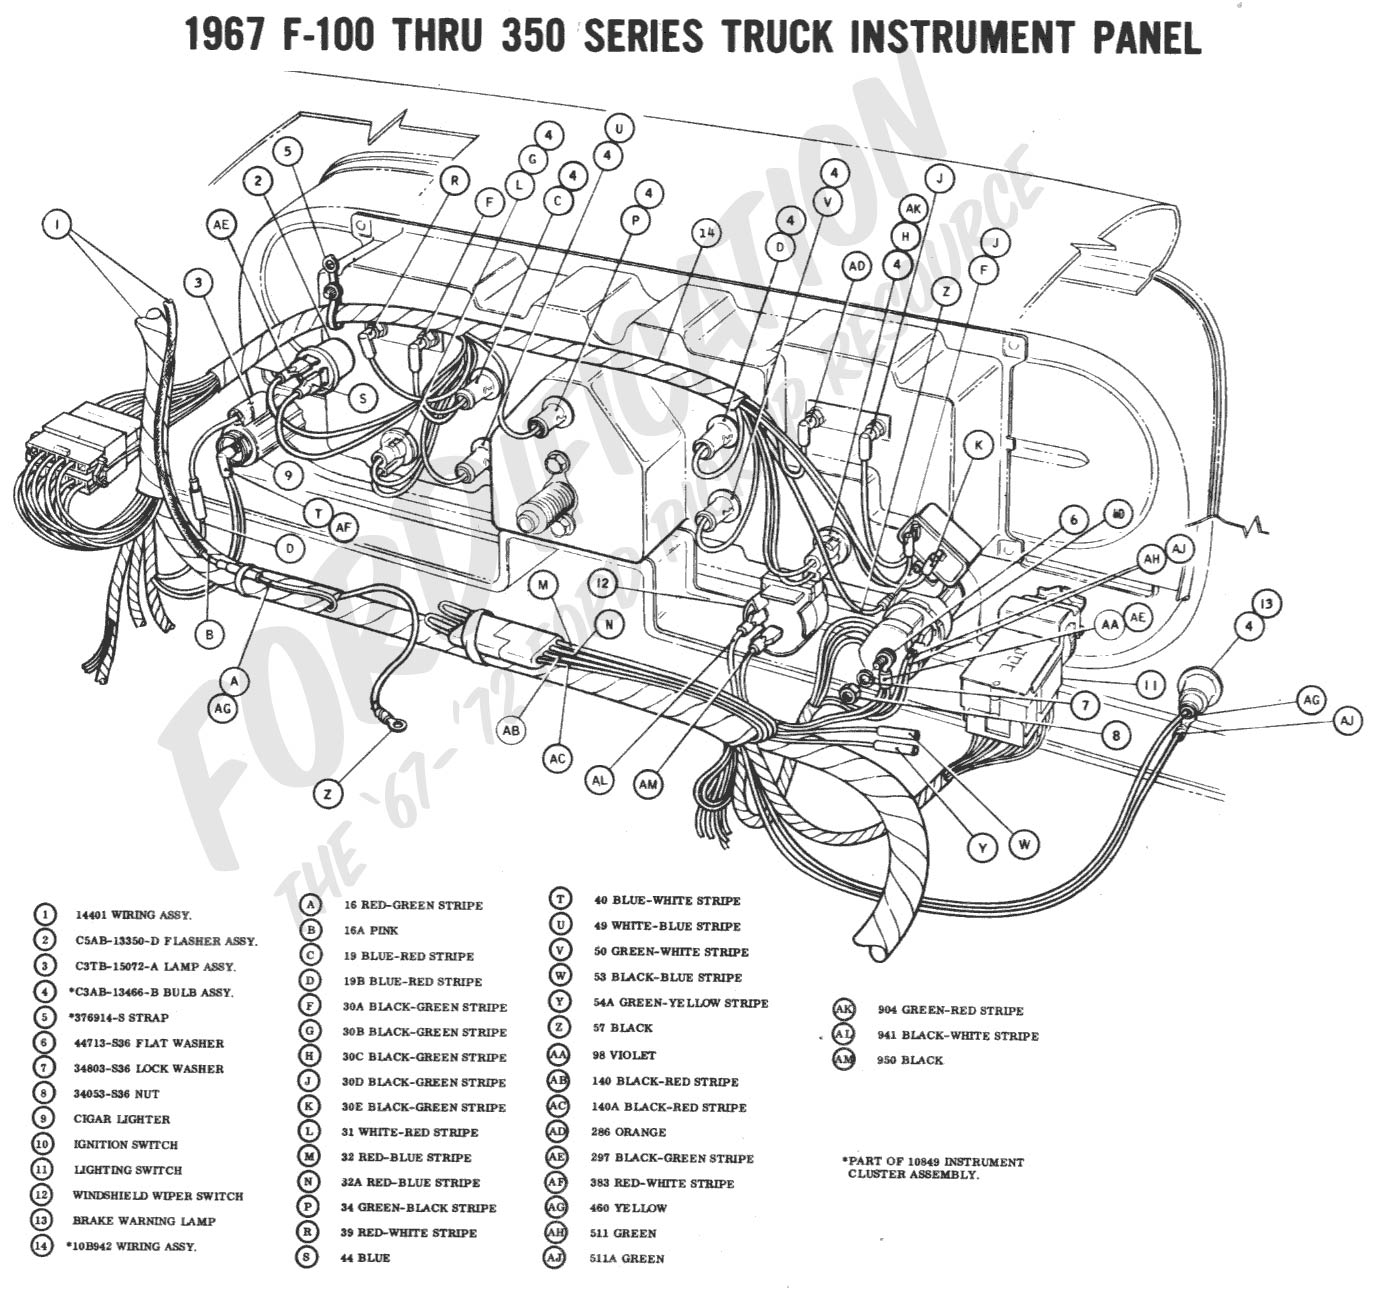 2010 02 23_205004_wiring 1967instrumentpanelFord_F100 67 cougar fuse box 67 cougar pitman arm wiring diagram ~ odicis Switchable Fuse at reclaimingppi.co